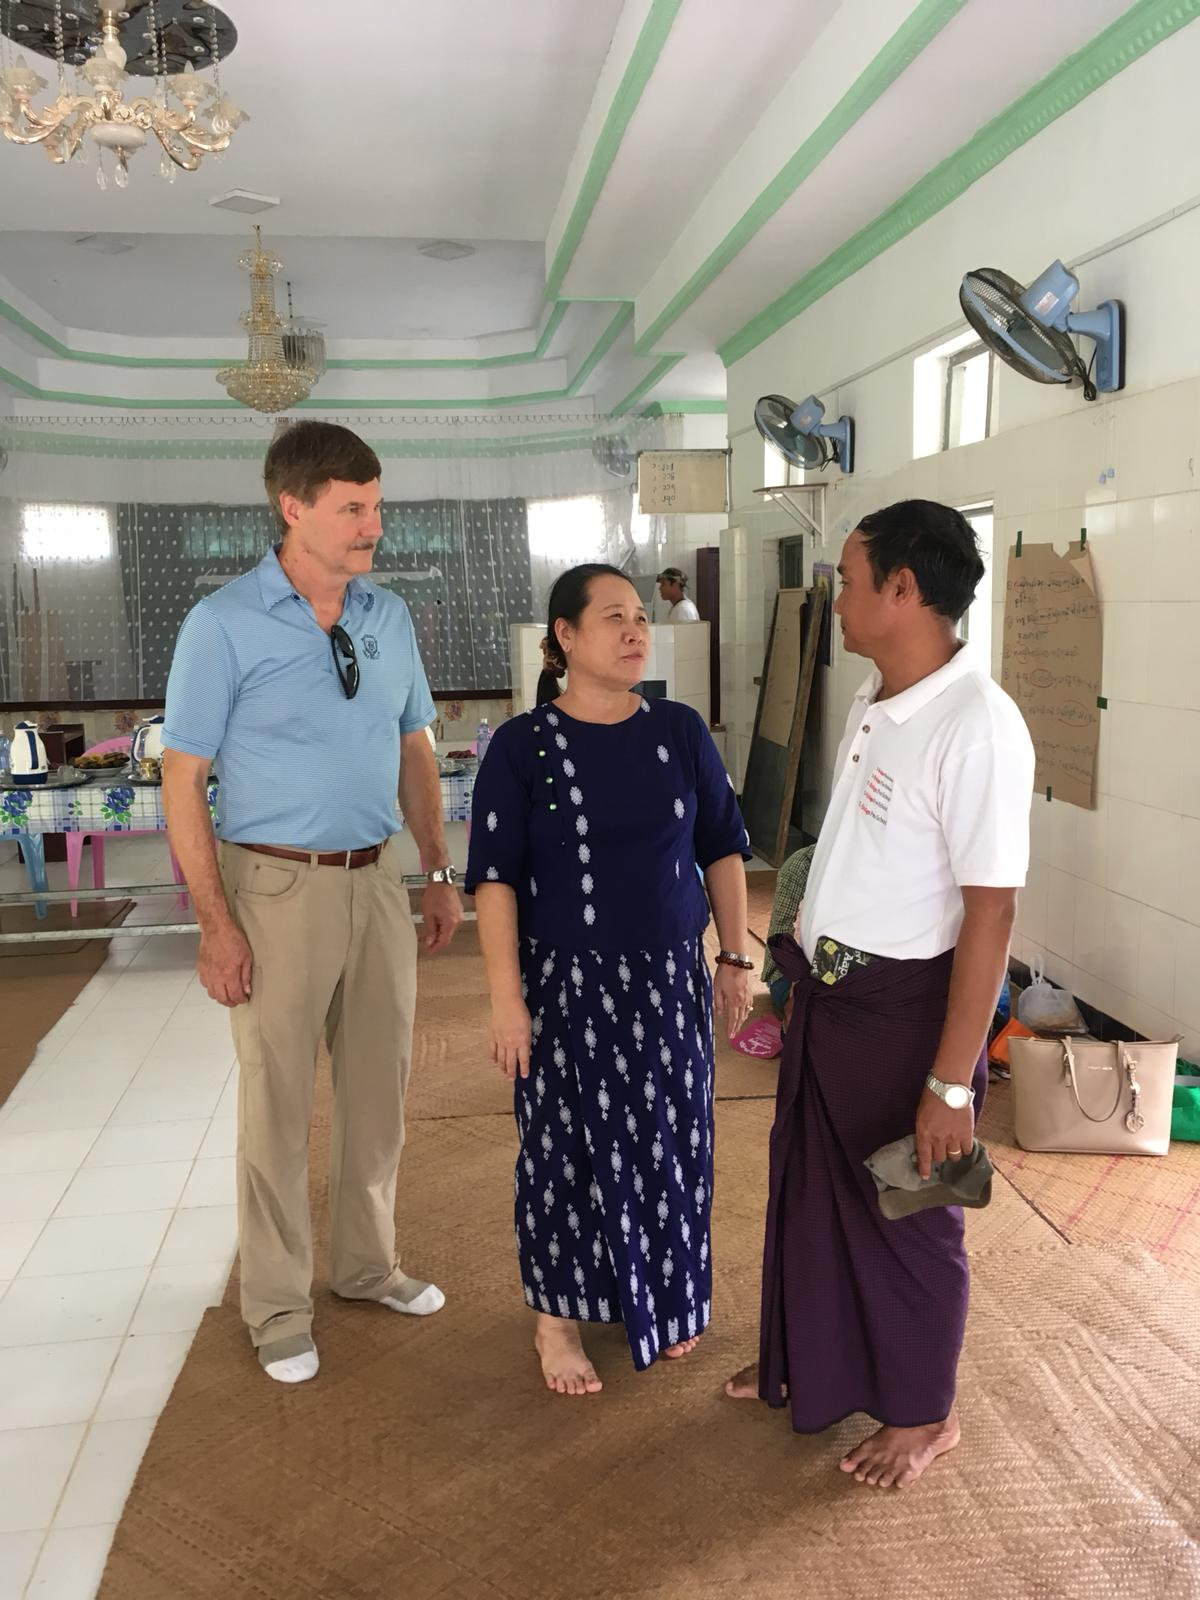 Five Talents Executive Director, Dale Stanton-Hoyle, meets with local program leaders in the Irrawaddy region of Myanmar. Five Talents has worked in Myanmar since 2011 to help impoverished, rural communities learn to save, invest, and build sustainable businesses.